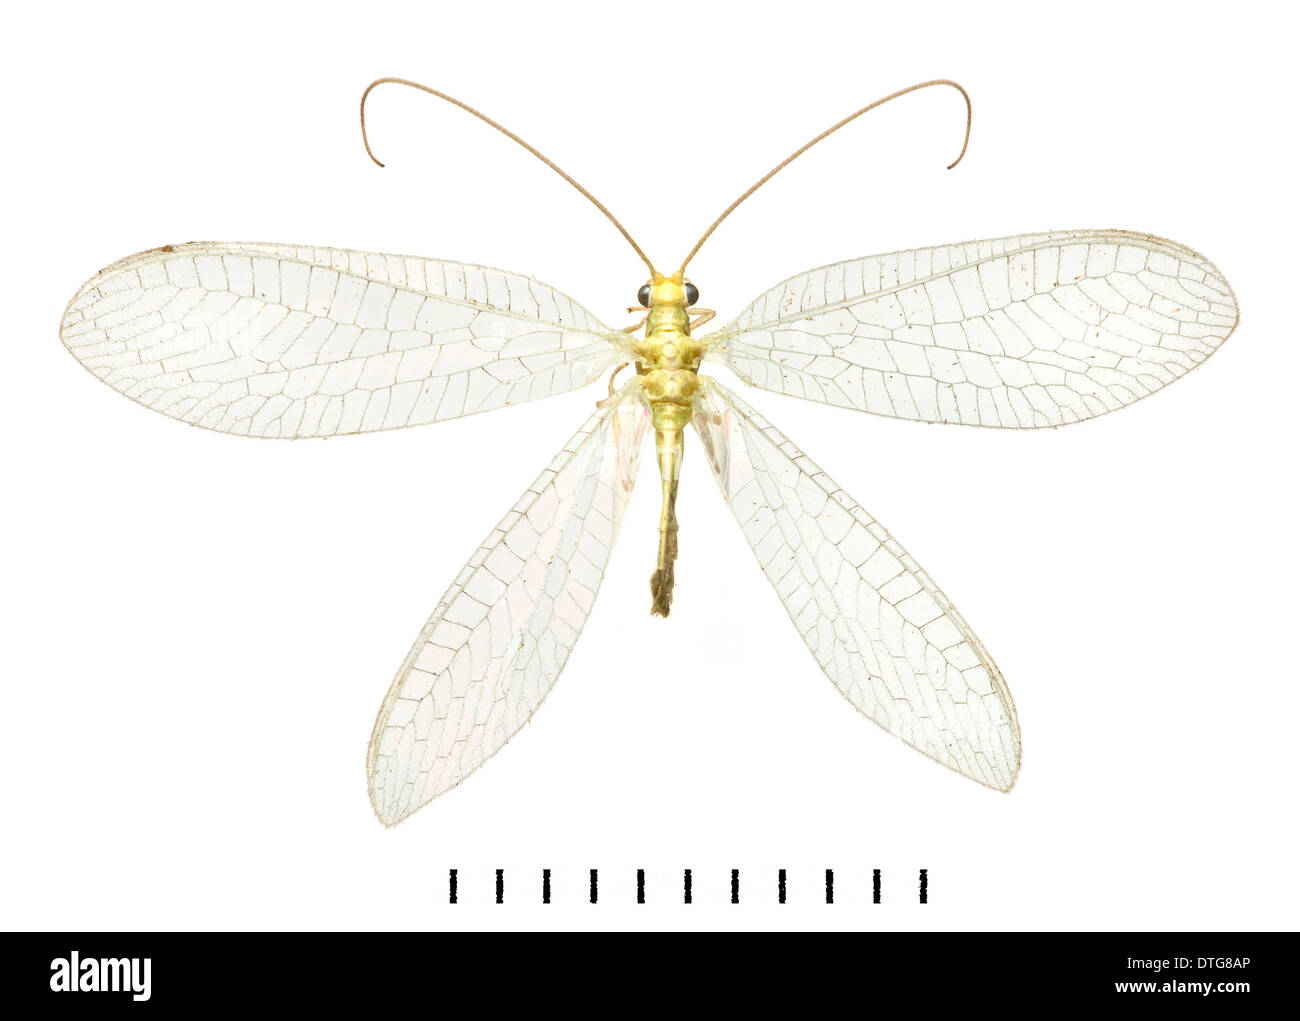 Lacewing - Stock Image